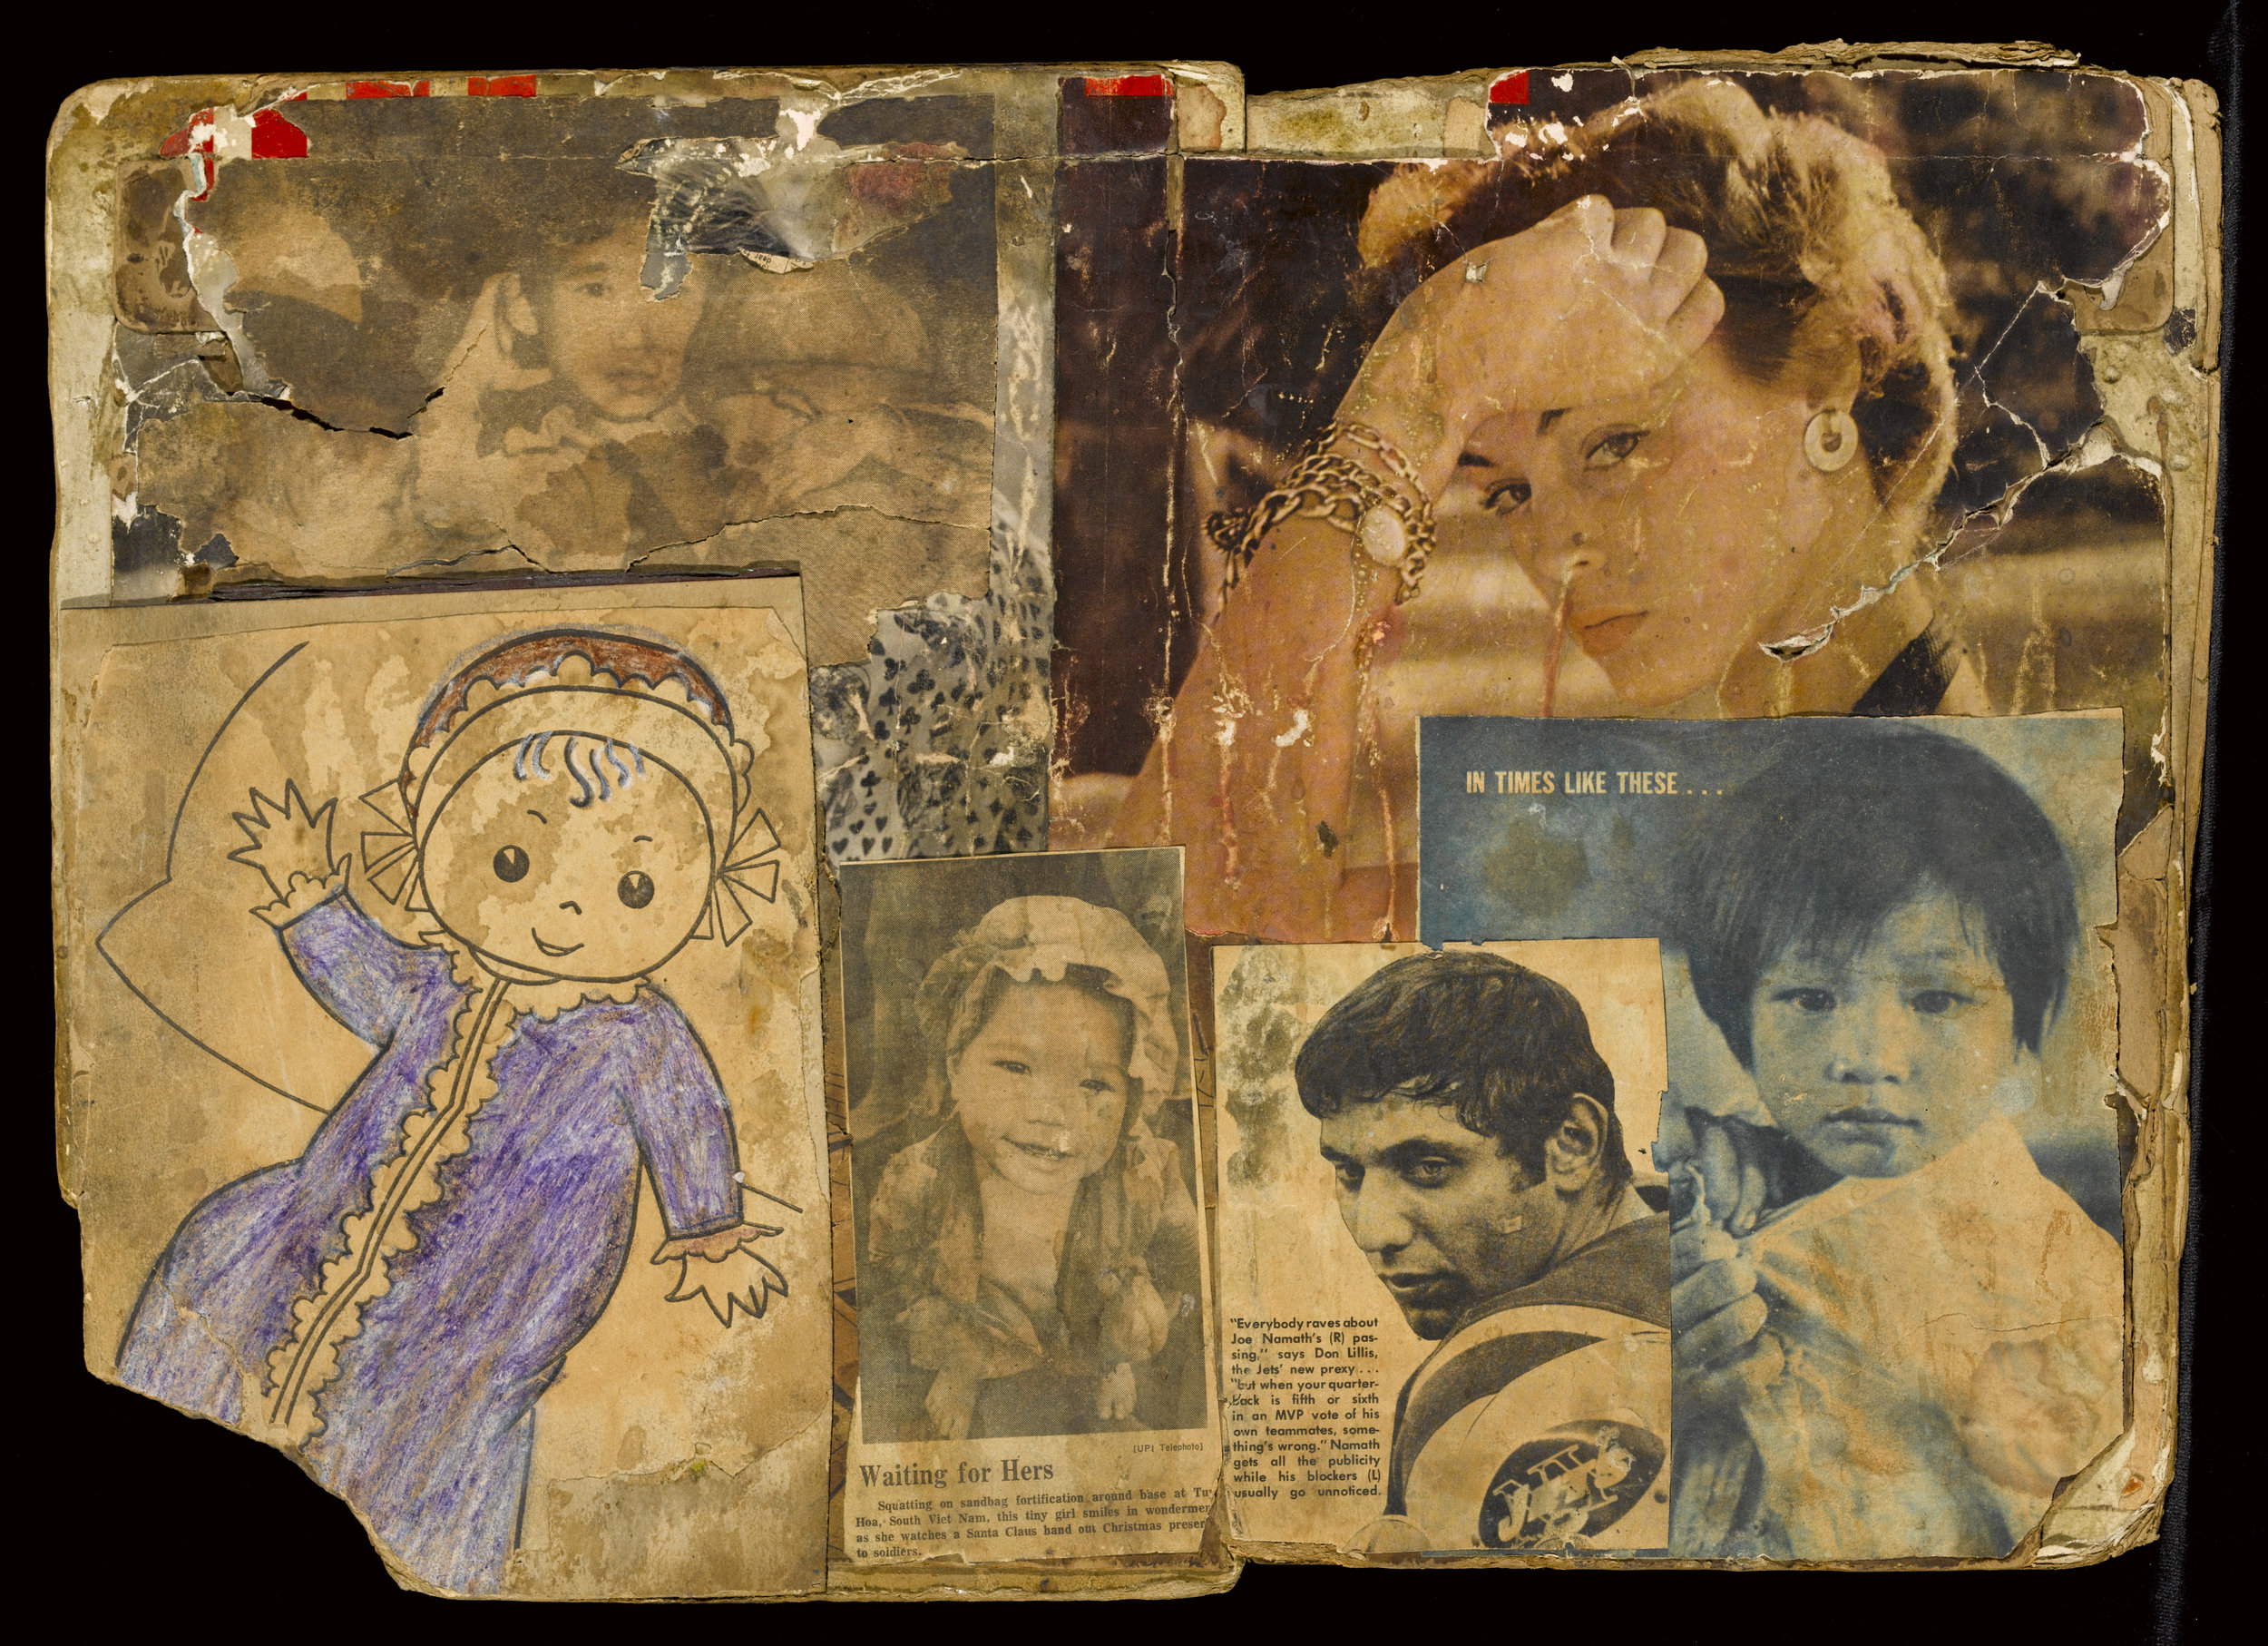 Henry Darger's Orphans and the Construction of Race - 7/10/17